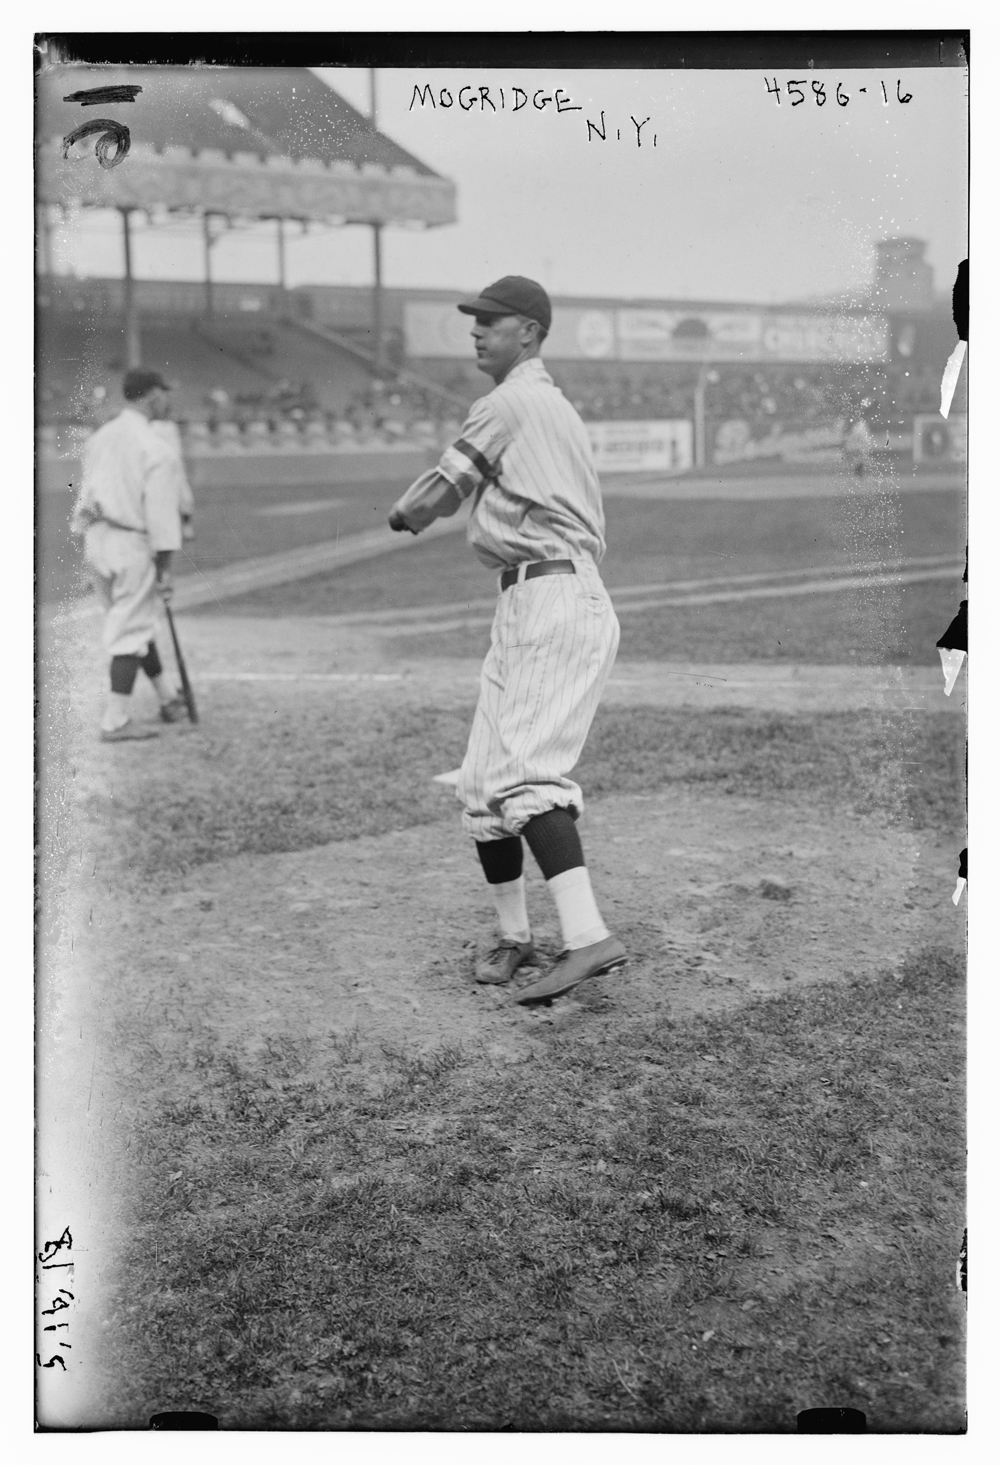 Defected in mid-May from the New York Yankees to the ship- building league, prompting a tirade from manager Miller Huggins against the aggressive recruiting.